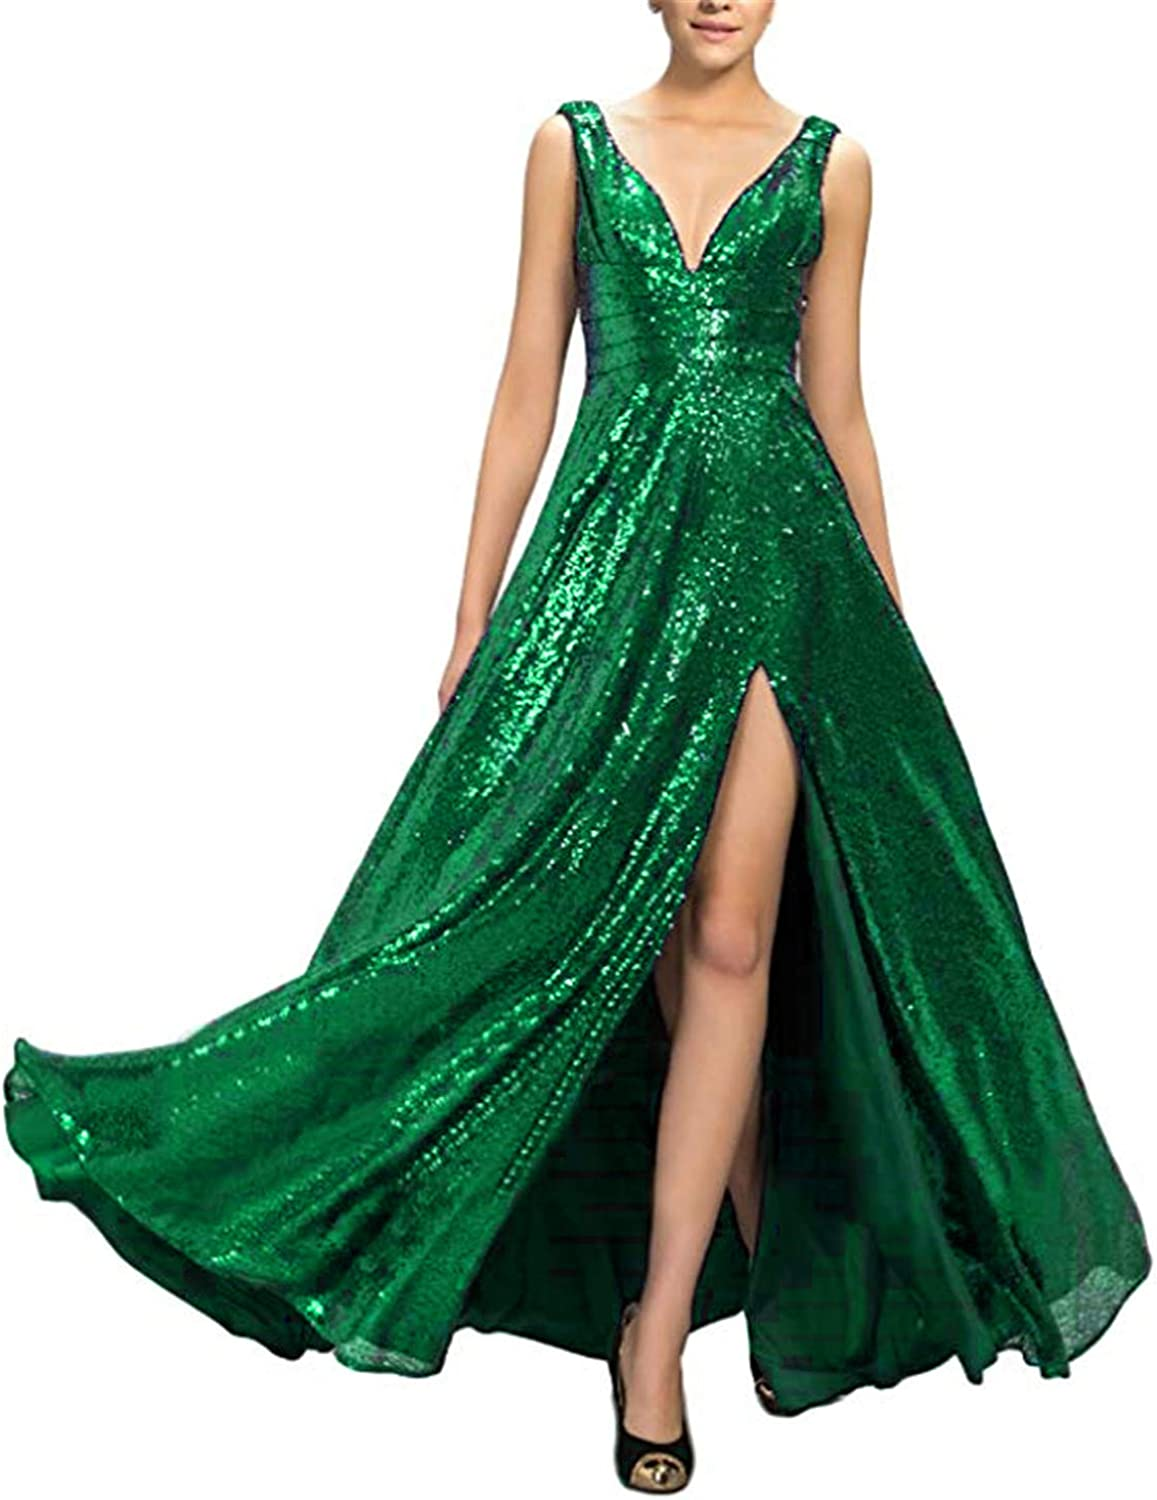 Scarisee Womens VNeck Sequins Prom Dresses Split Formal Evening Party GownSA176